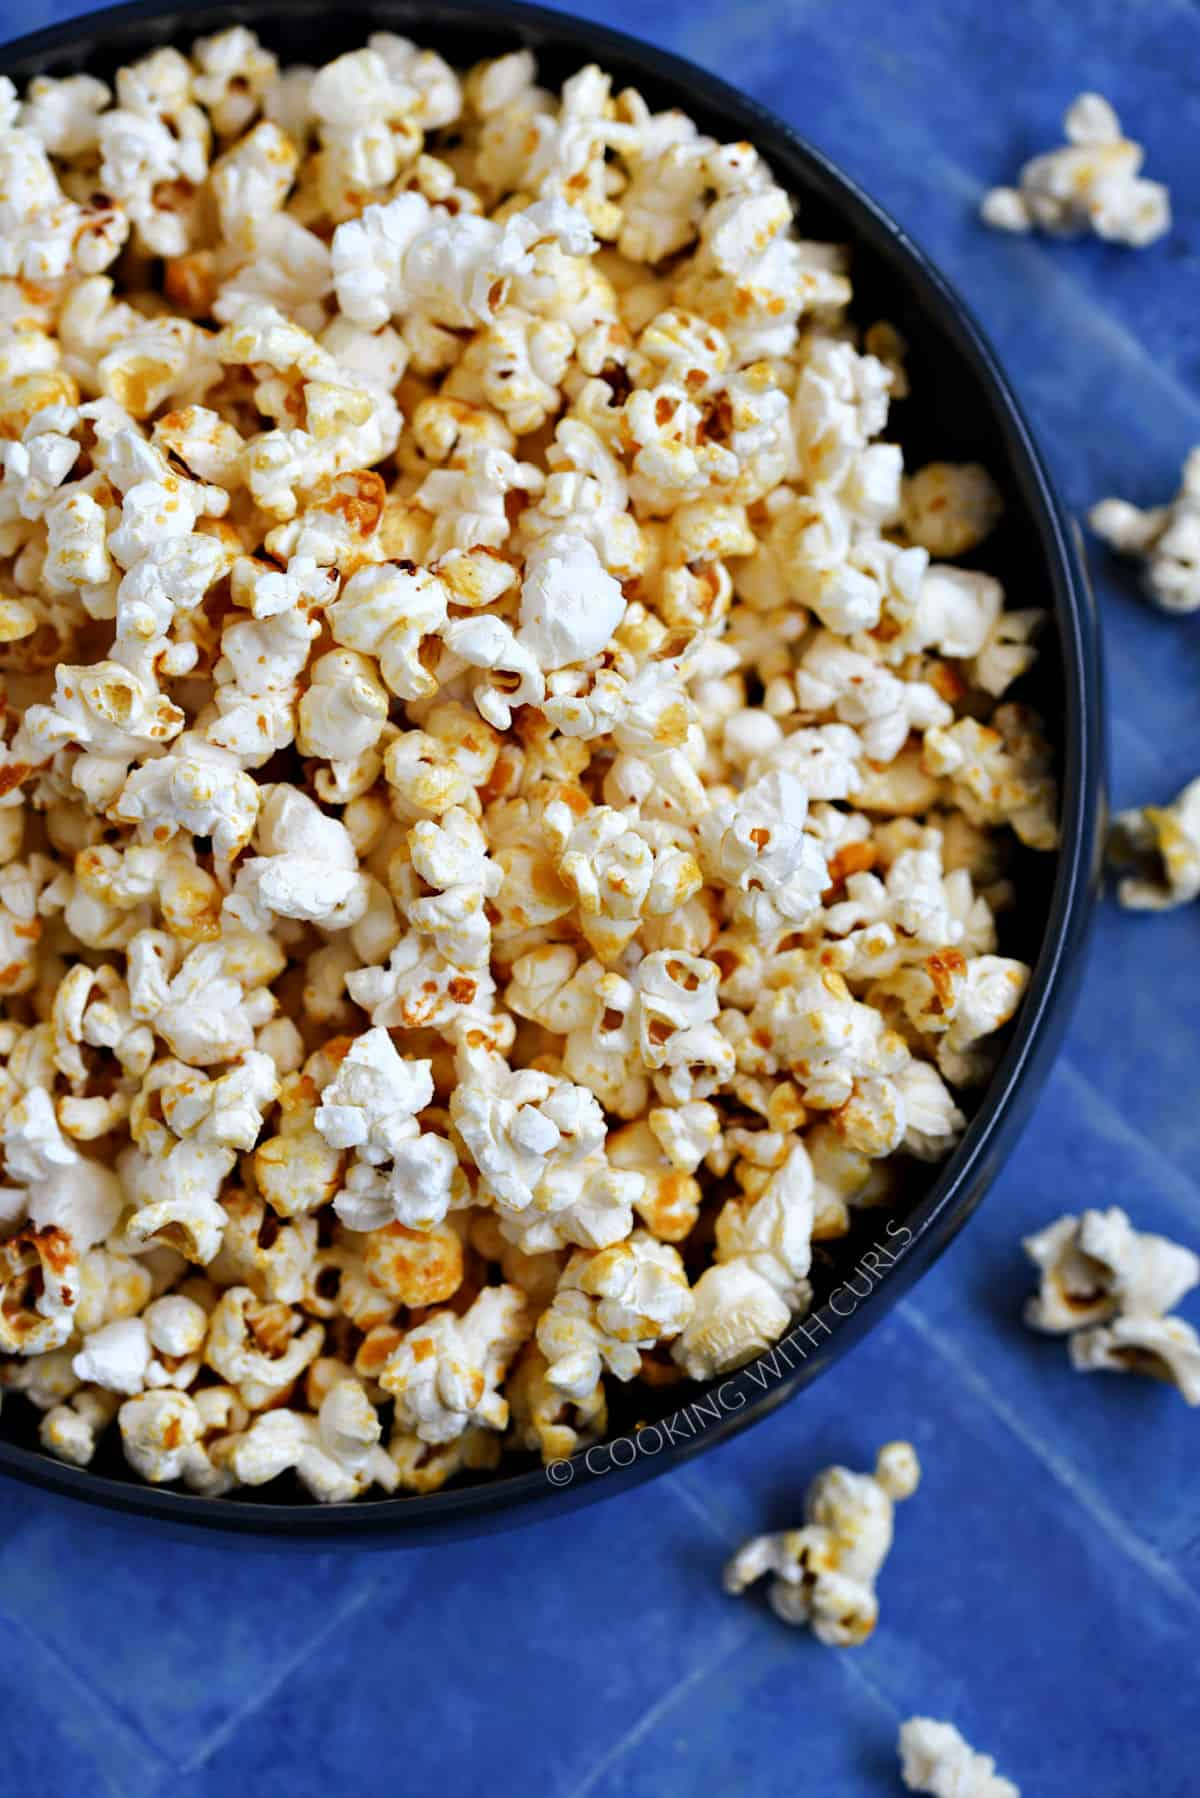 A close-up image of a bowl full of kettle corn popcorn sitting on a blue tile background.